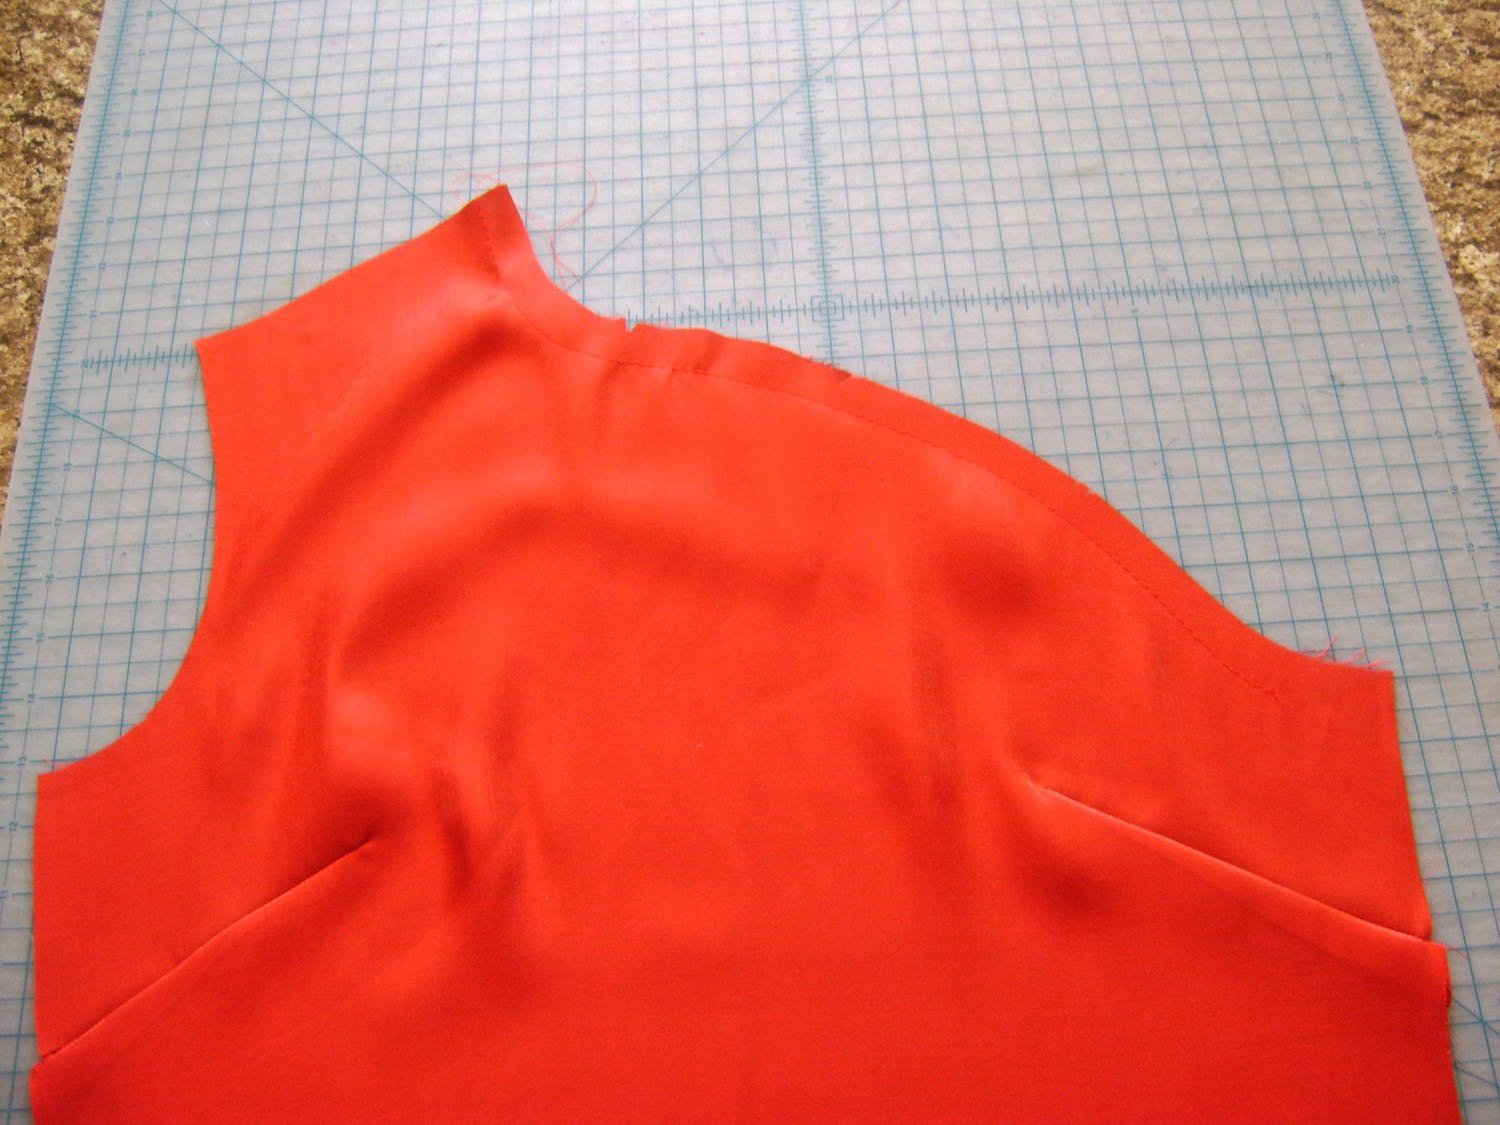 """step 2 - Cut out the front of the top and sew a basting stitch on the neckline 5/8"""" from the raw edge beginning at the shoulder and ending at the side seam. Use this stitching as a guide for placing the stencil. It will help you avoid painting too close to the final stitching line and prevent paint from ending up inside the seam allowance. With a normal length stitch, create the two darts and press."""